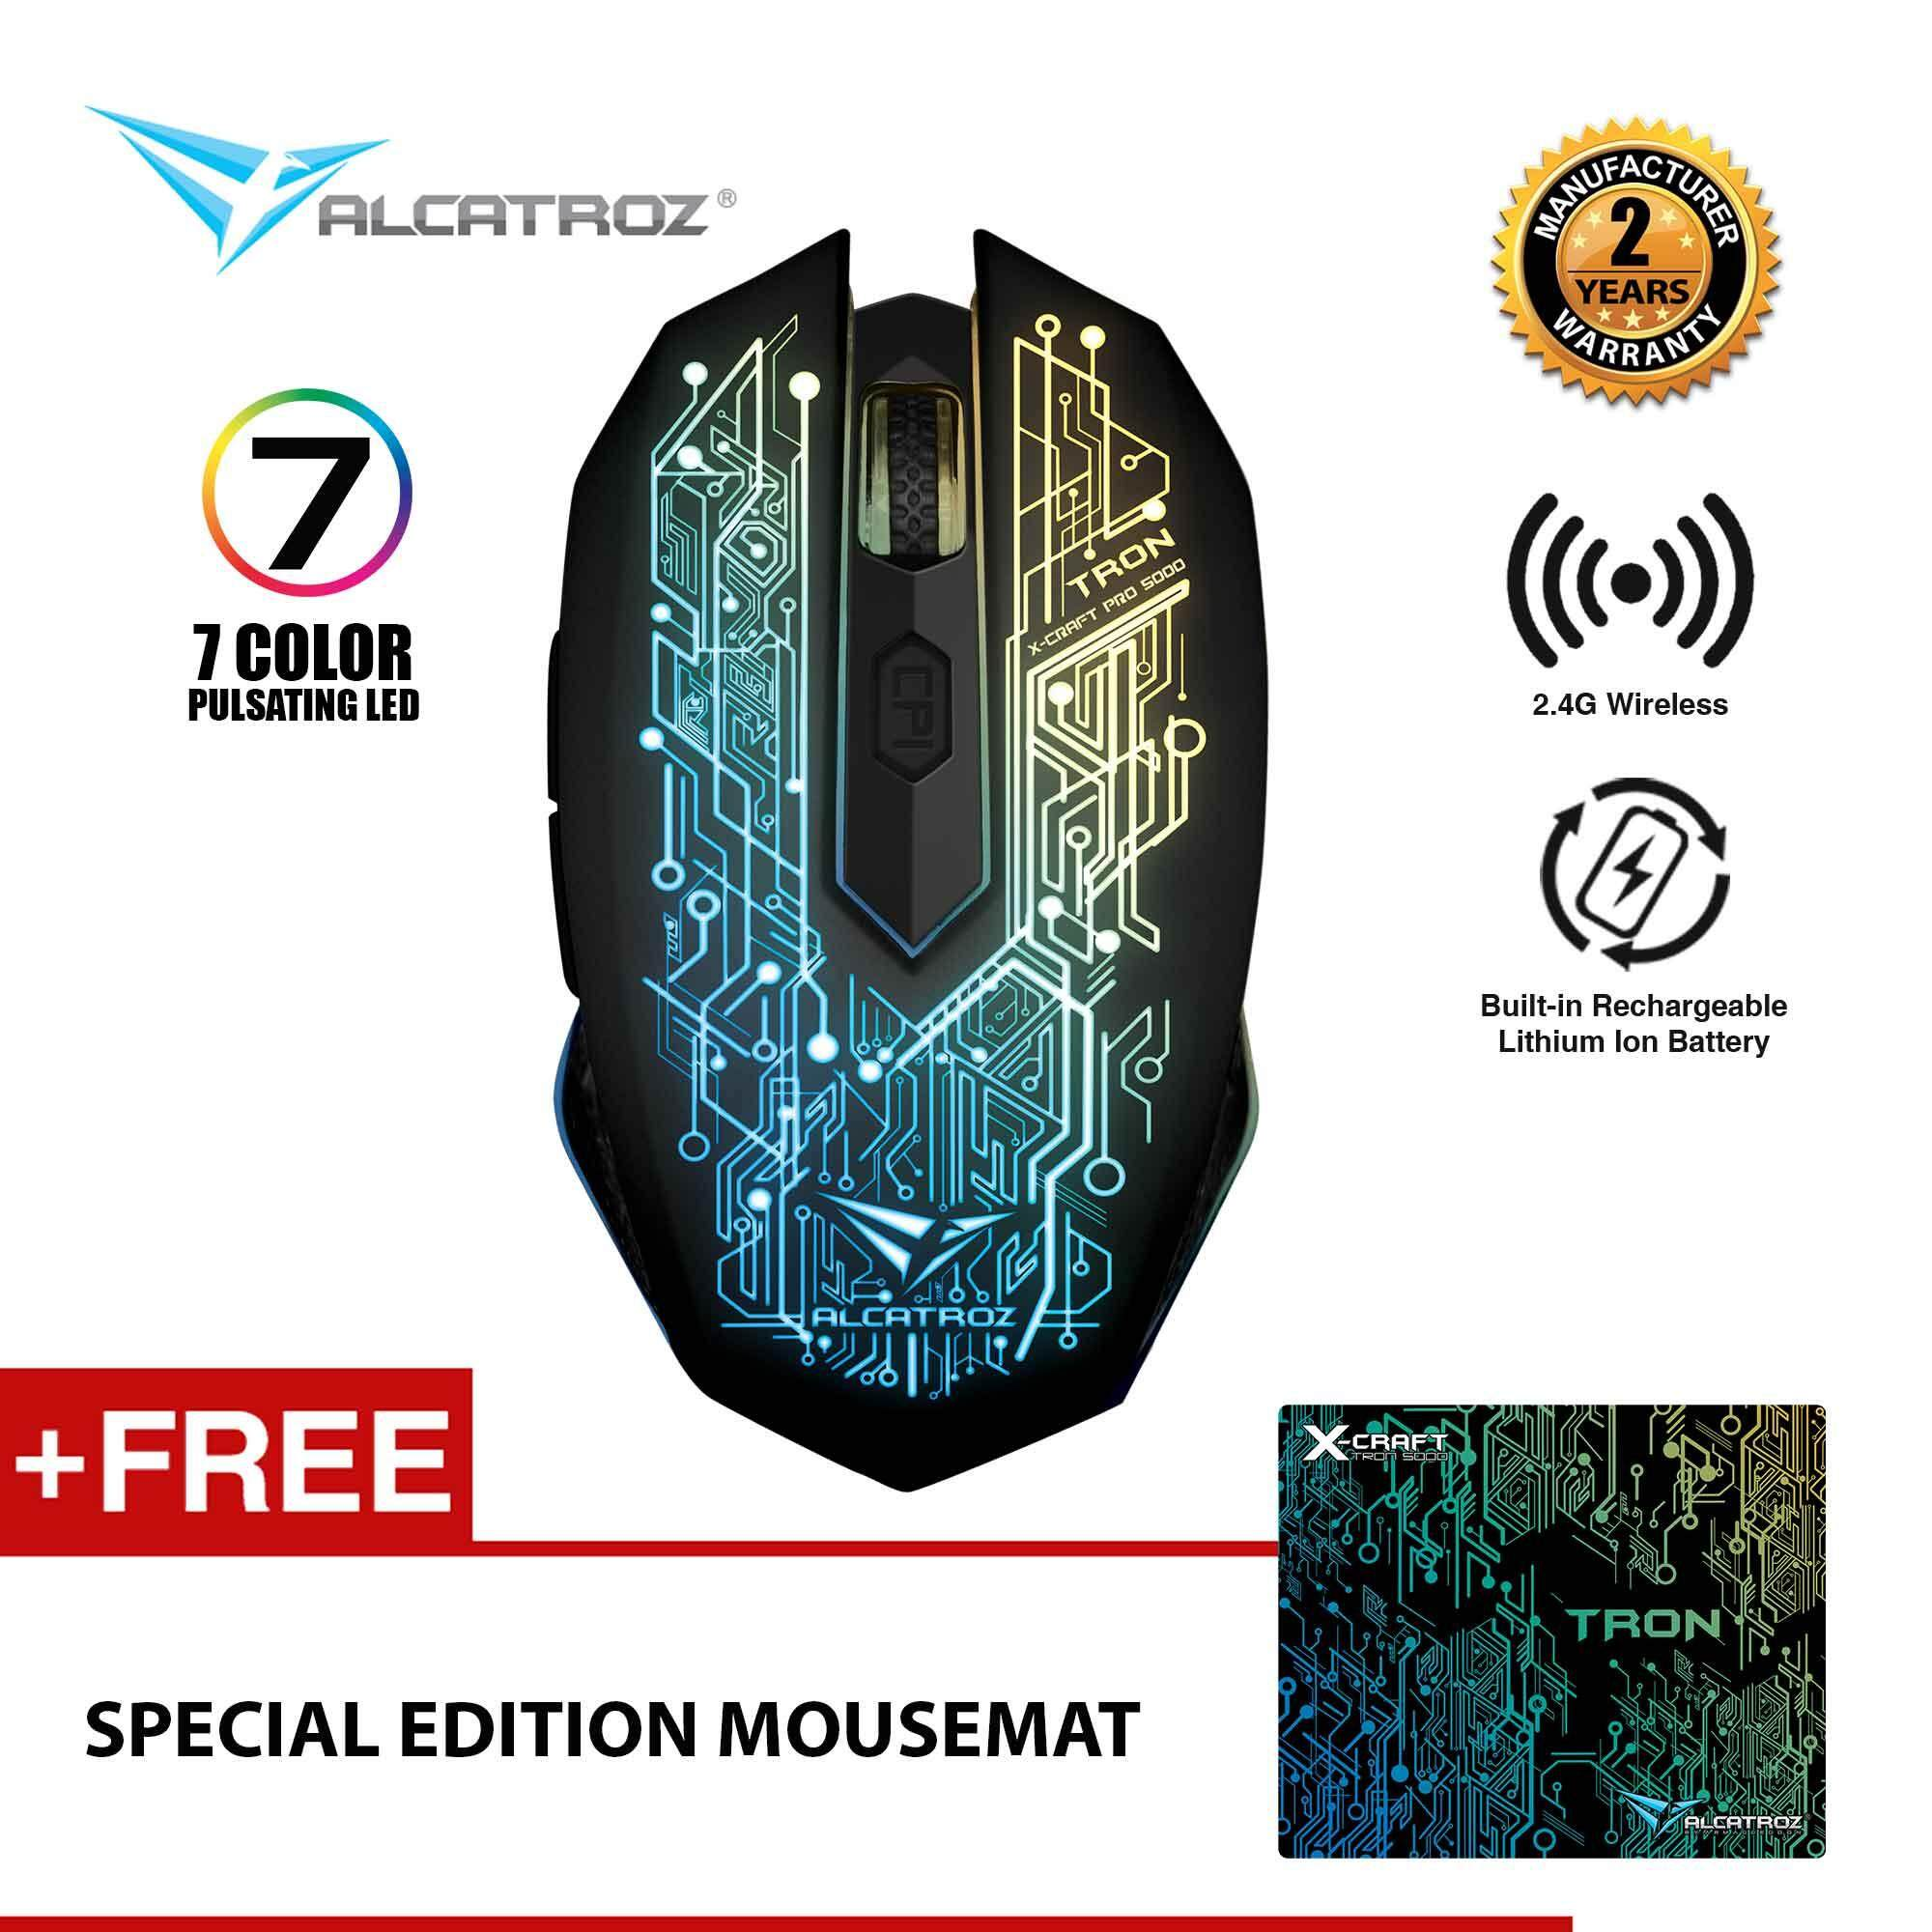 Gaming Mice For The Best Prices In Malaysia James Donkey 102 1600dpi 6d Wireless Optical Mouse Black X Craft Air Tron 5000 Rechargeable 3200 Cpi Free Mousemat